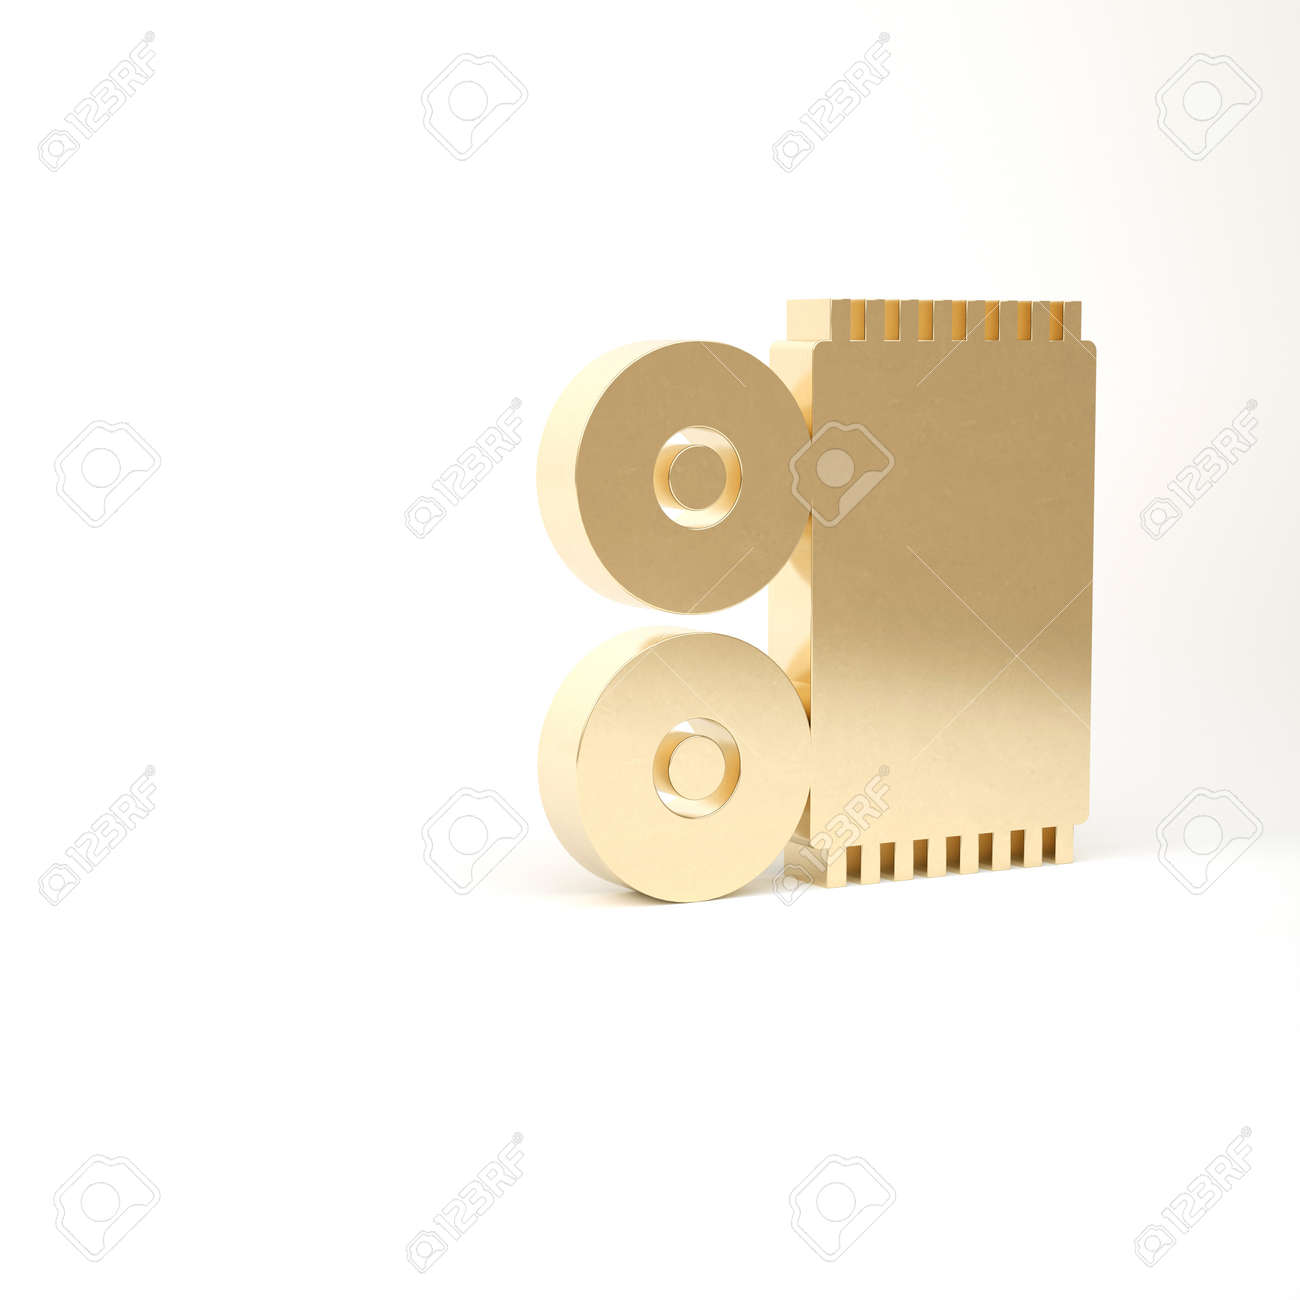 Gold Traditional carpet culture ramadan arabic islamic celebration icon isolated on white background. 3d illustration 3D render - 169797742